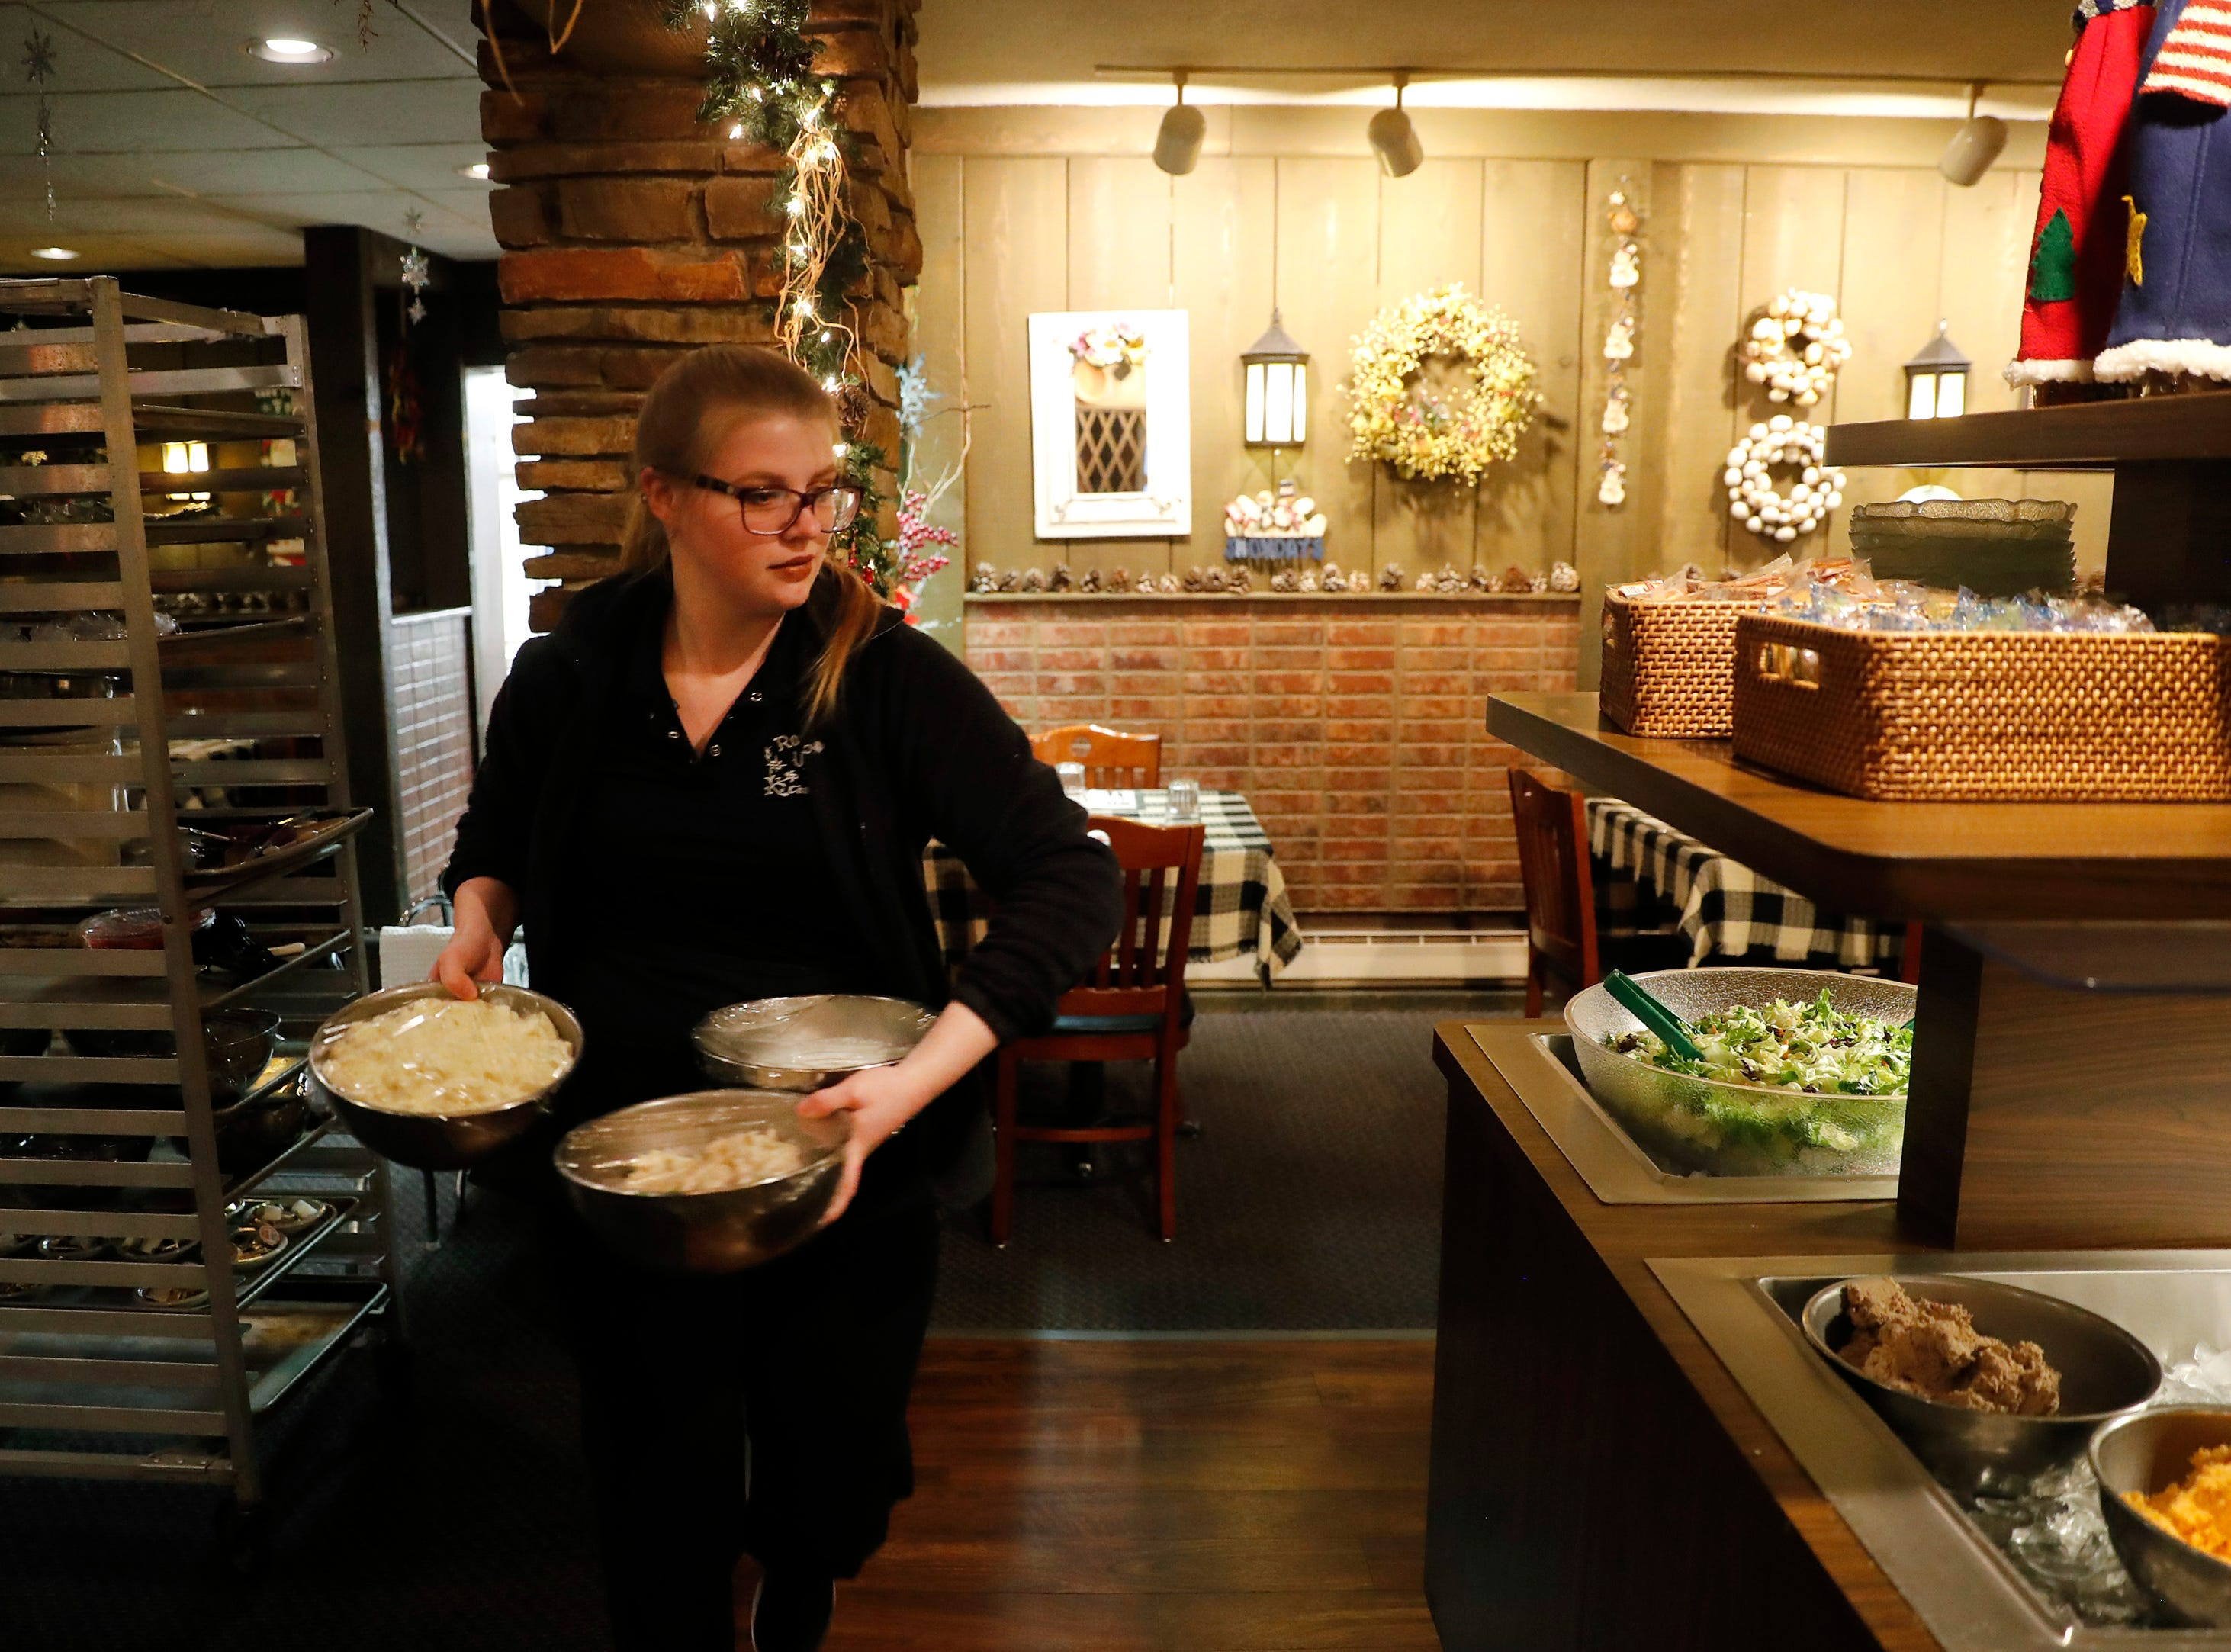 Anita Ditter, an employee at Roepke's Village Inn, prepares the salad bar for service Wednesday, Dec. 12, 2018, in Charlesburg, Wis.